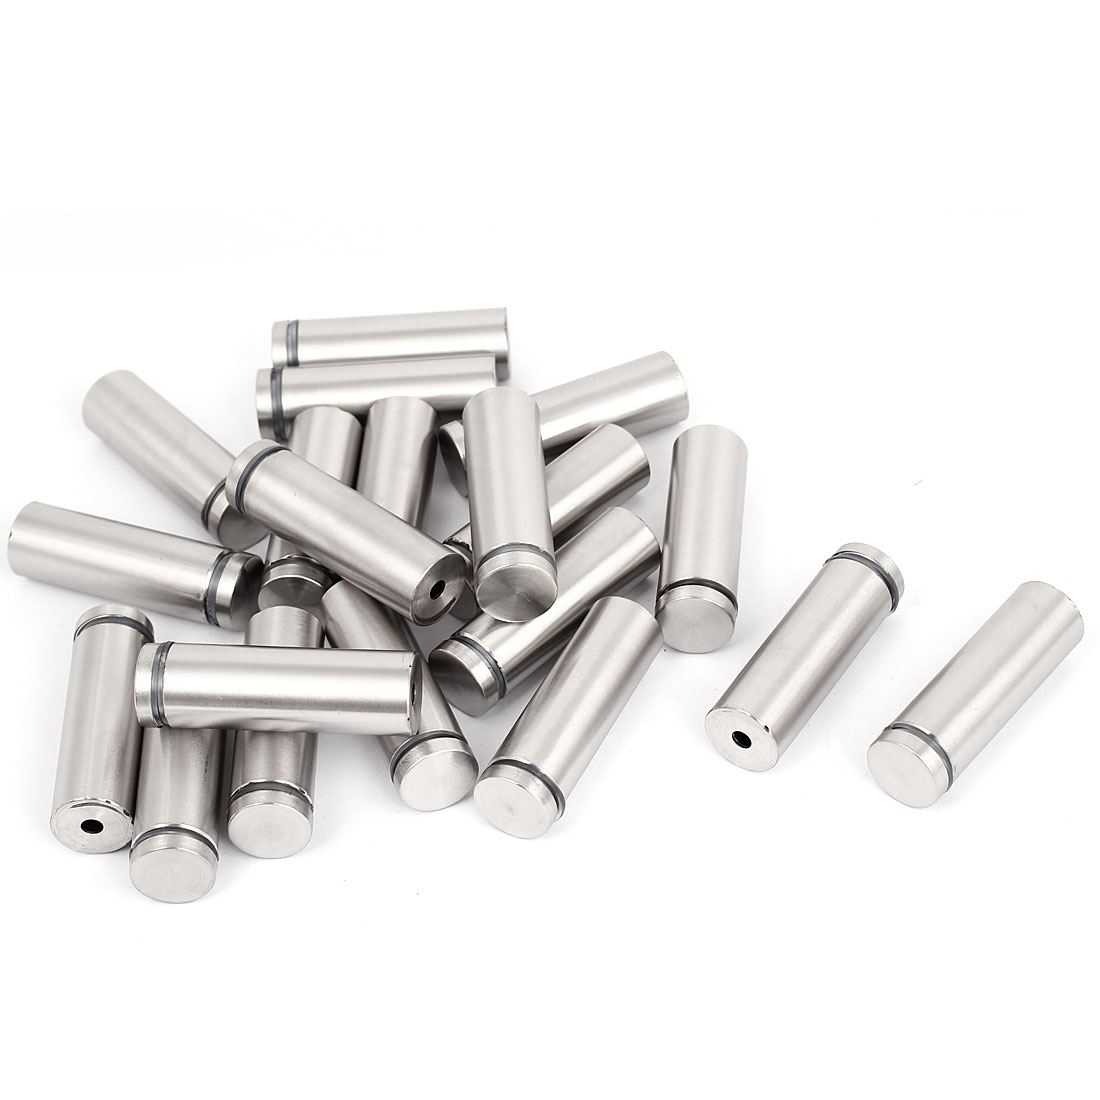 19mm x 60mm Stainless Steel Advertising Frameless Glass Standoff Pins 20pcs